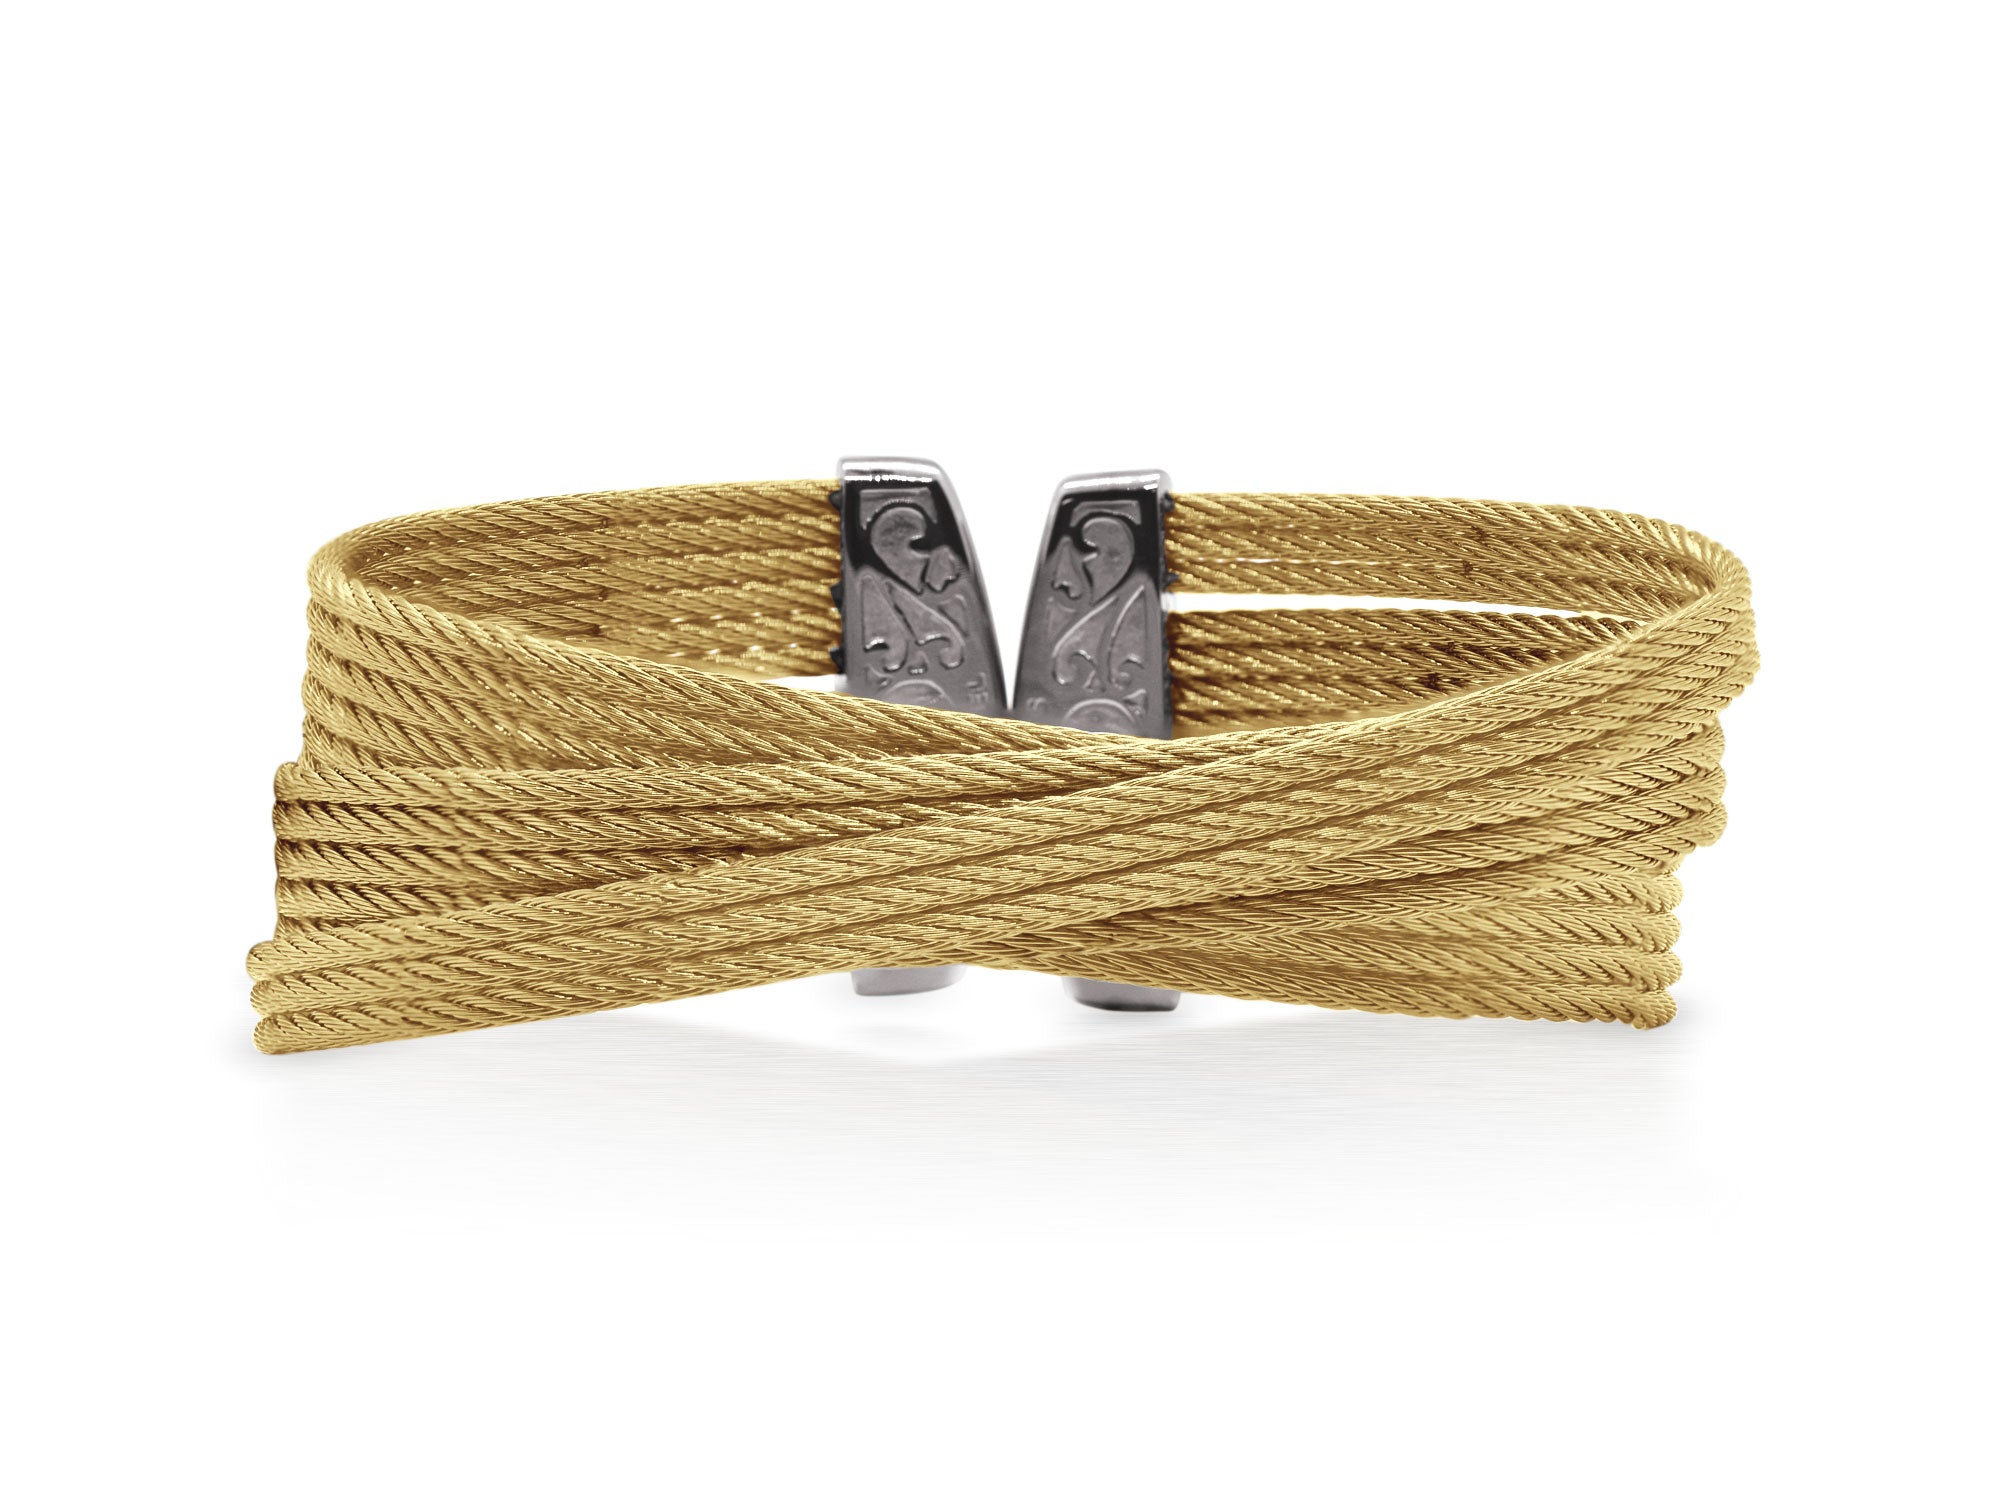 ALOR Classique Multi-Strand, Gold Cable Bangle with Angled Design